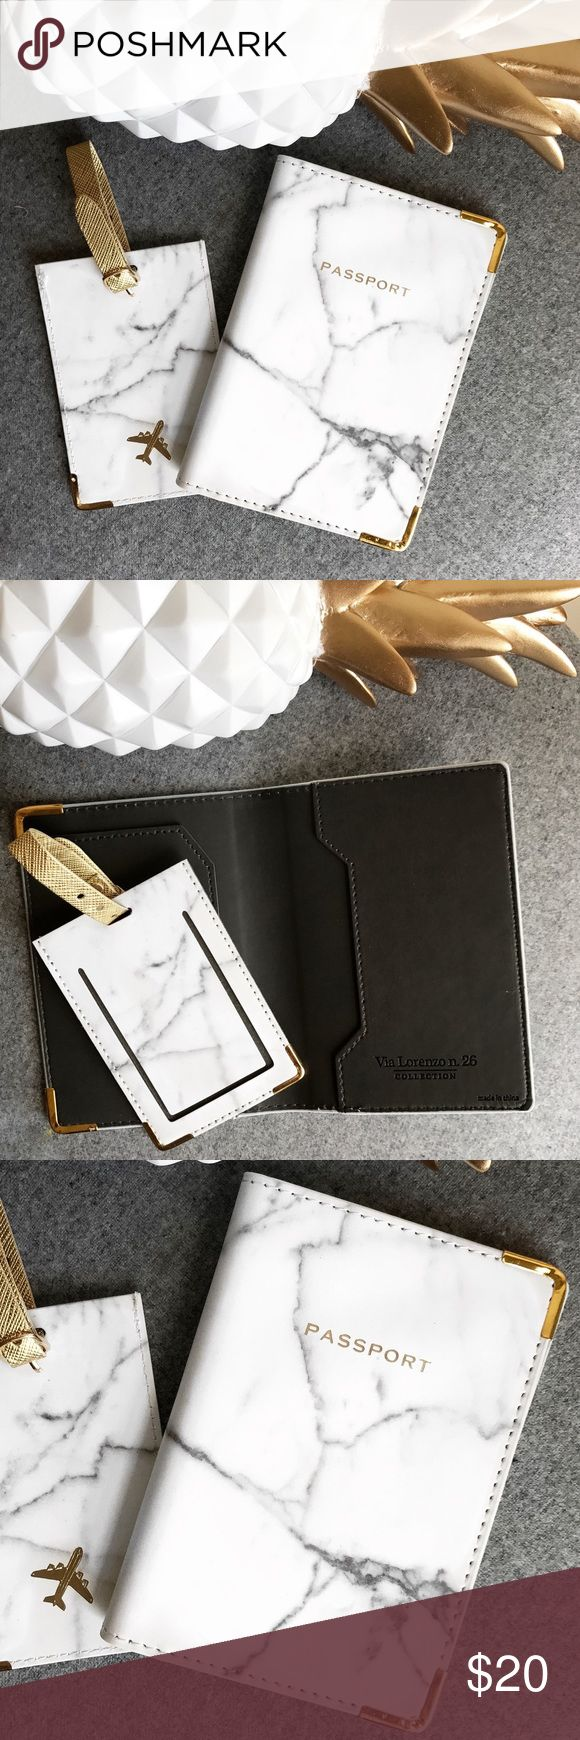 NIB • P a s s p o r t • H o l d e r NIB white marble passport holder with matching luggage tag. Via Lorenza n. 26  Accessories